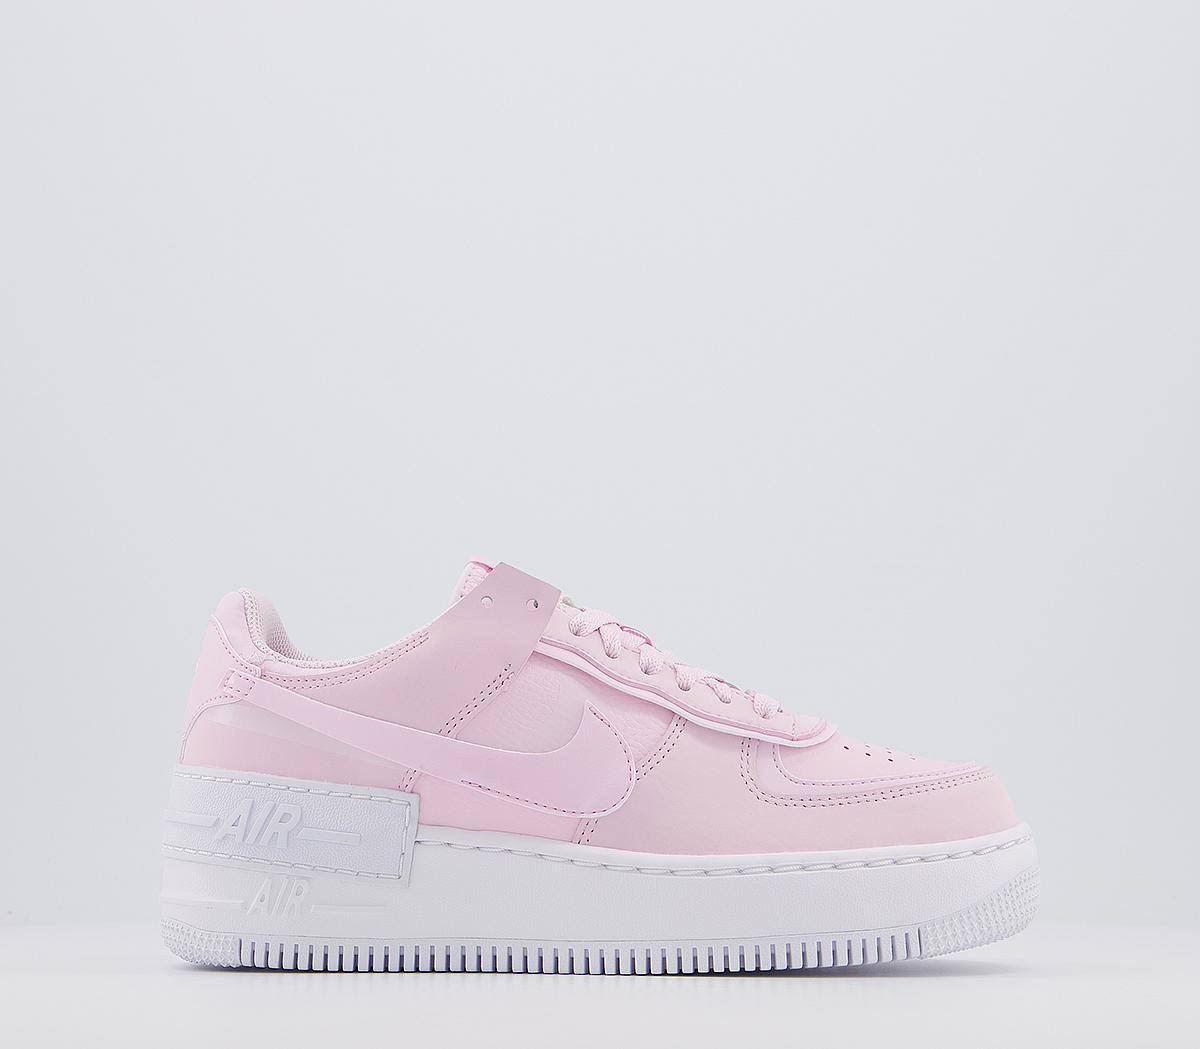 Nike Air Force 1 Shadow Women's - Pink Foam - Trainers